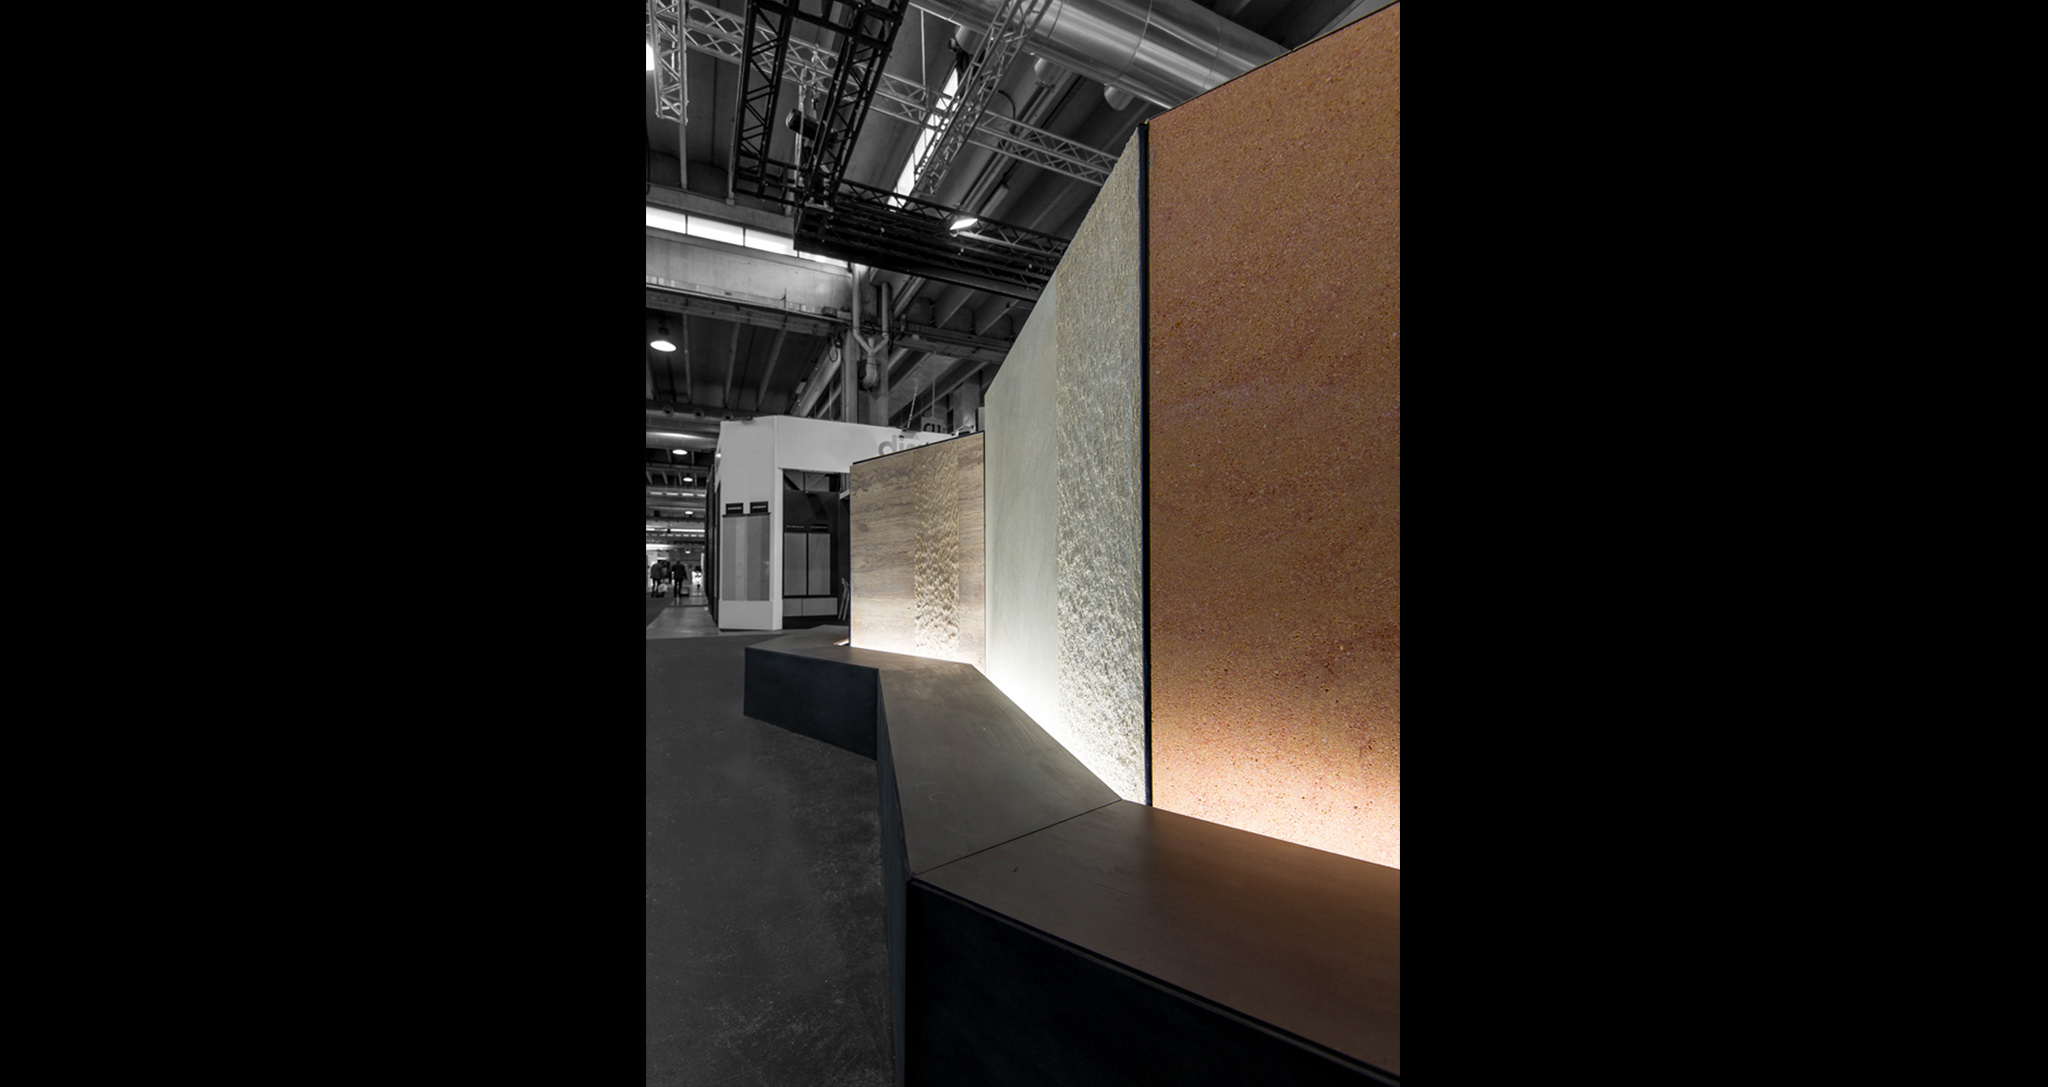 ARCHITECTURE TEMPORARY COMMERCIAL STAND LEVANTINA STAND MARMOMAC 2017 BY ROCAMORA DESIGN ELCHE ALICANTE SPAIN